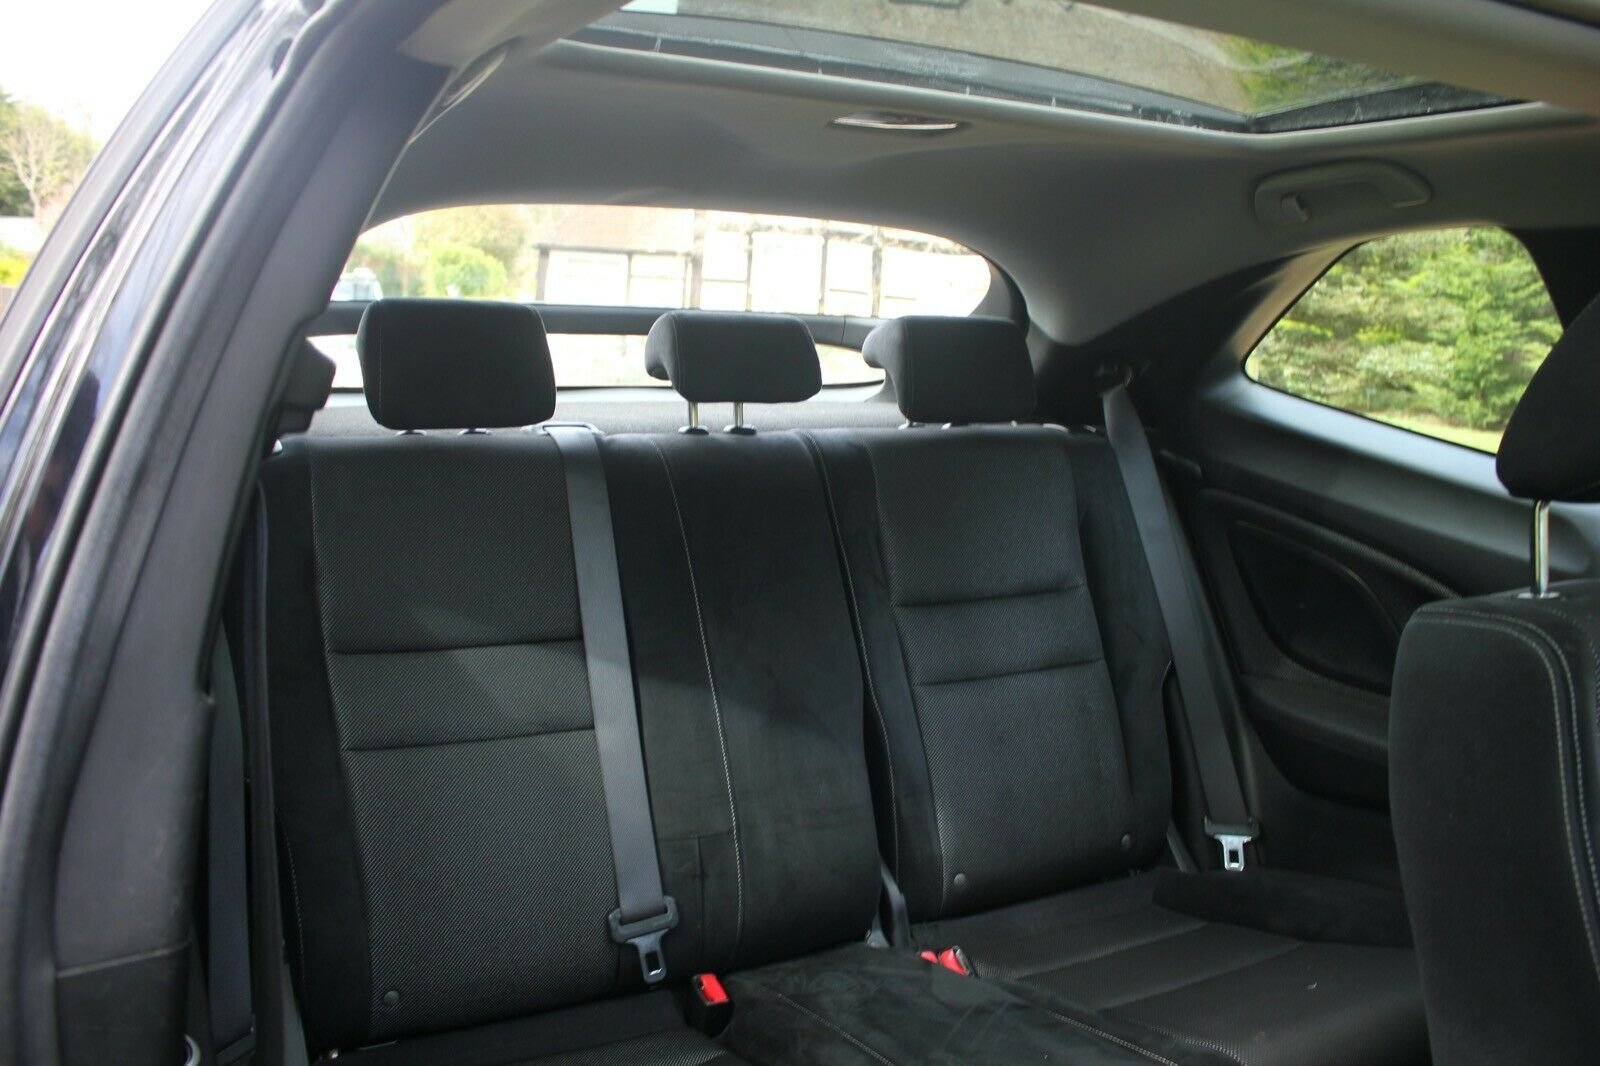 2009 Honda civic type s gt 1.8 FULL Honda service histo For Sale (picture 5 of 5)